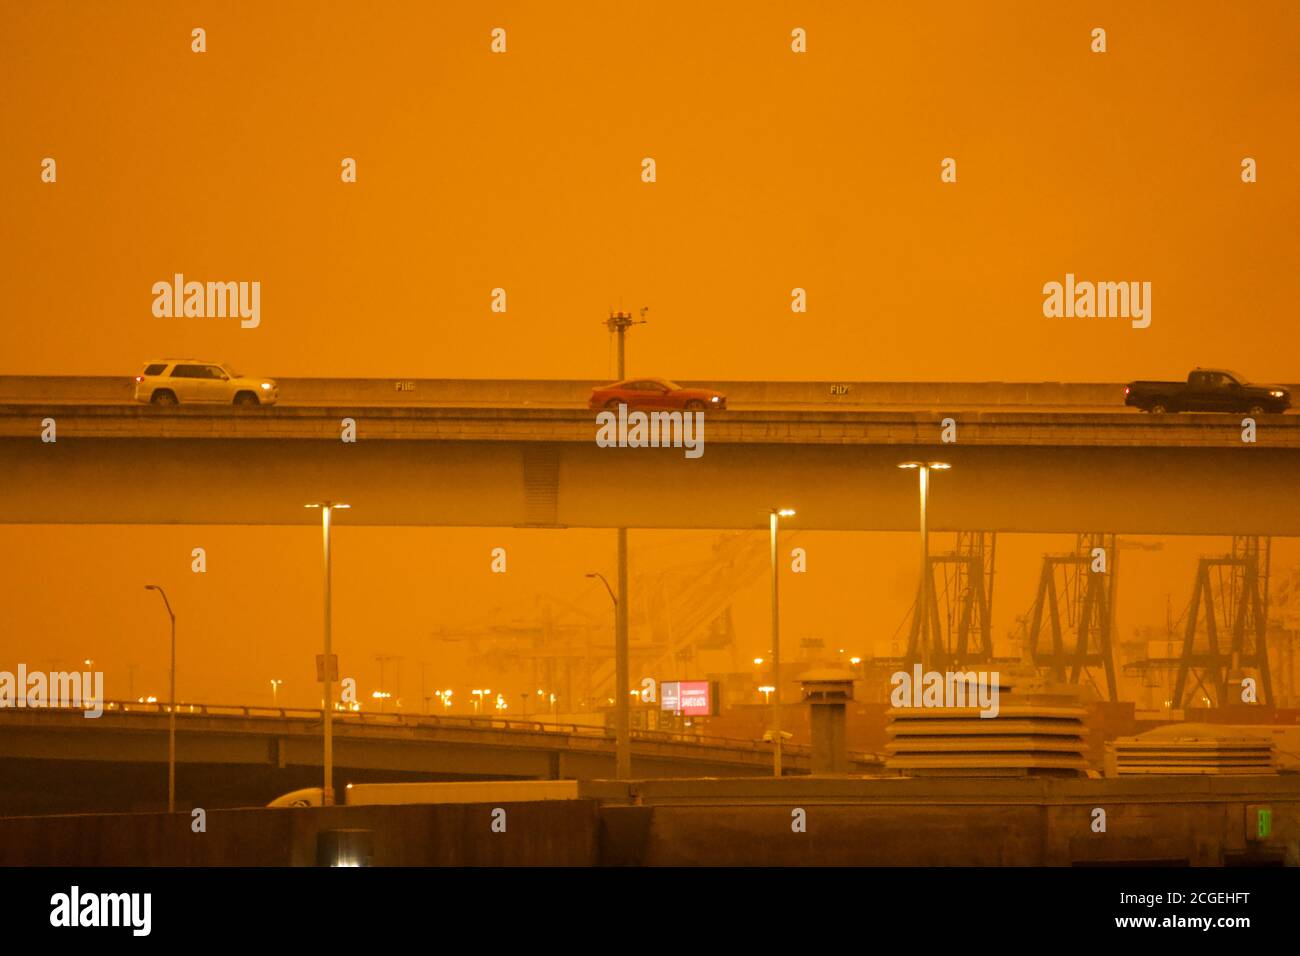 September 9, 2019. San Francisco Bay Area has a bizarre orange sky from wildfire smoke from out of control Oregon and California wildfires. Stock Photo